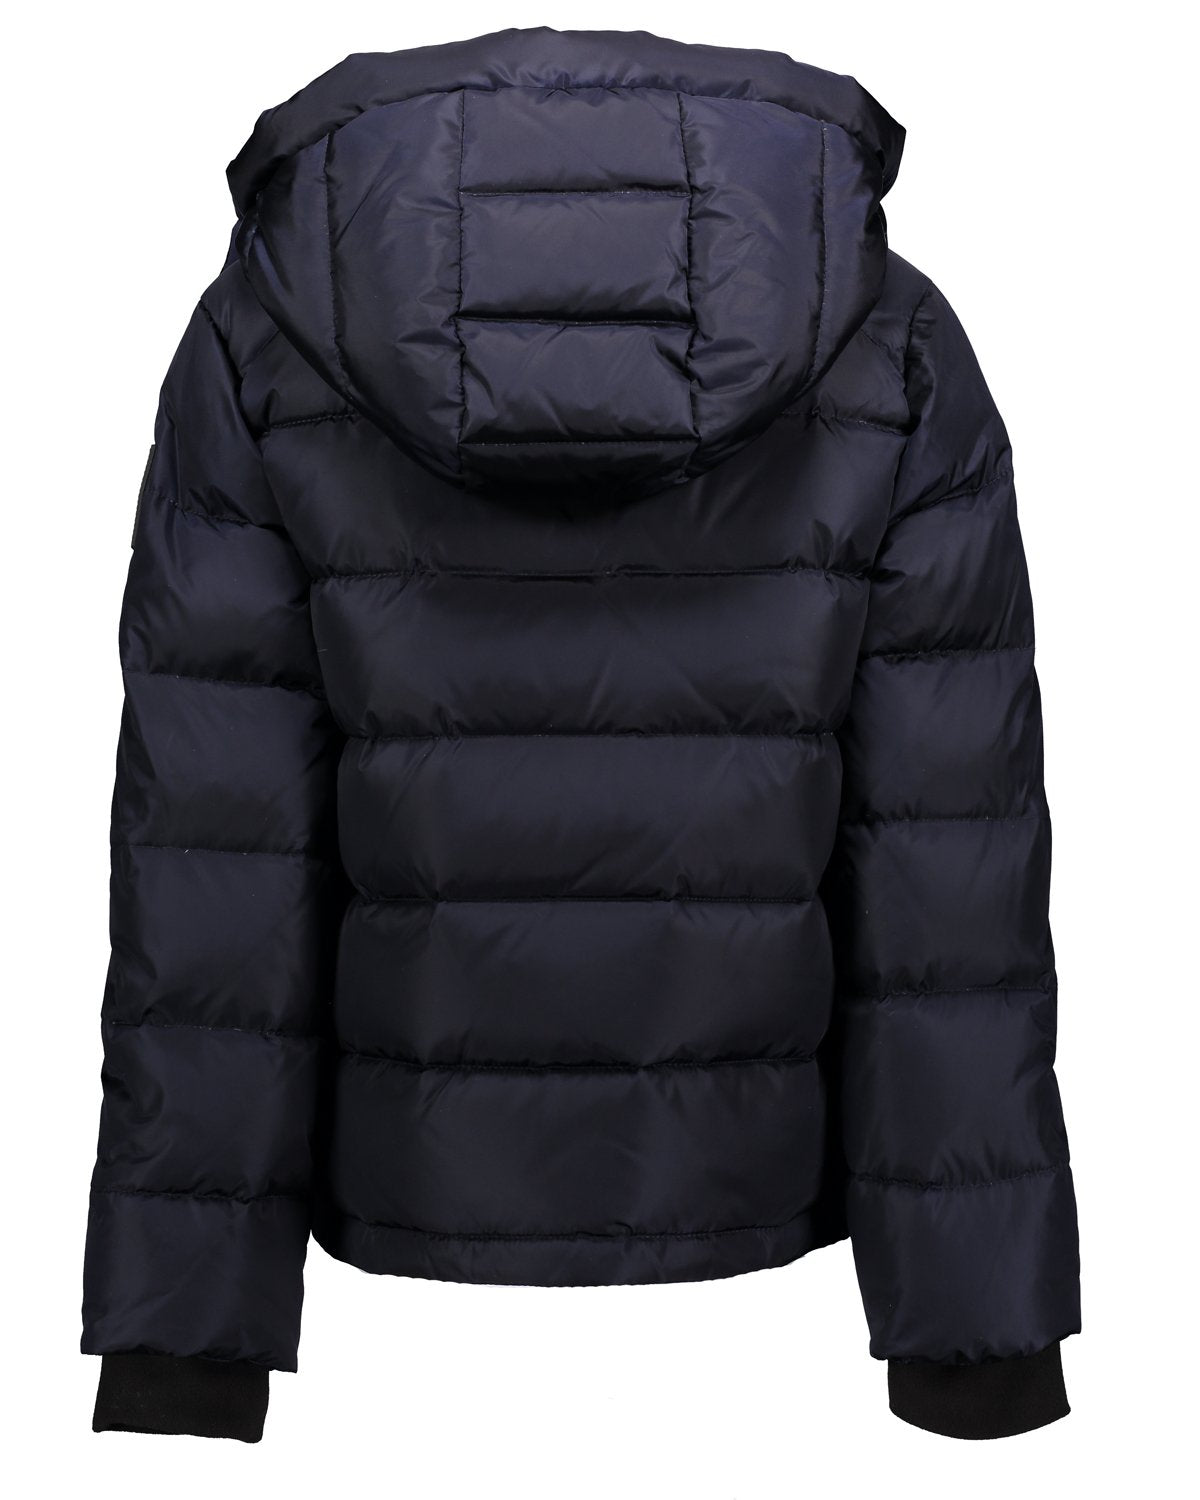 TODDLER BOYS JACKSON TODDLER BOYS JACKSON - SAM. New York Sam nyc jacket